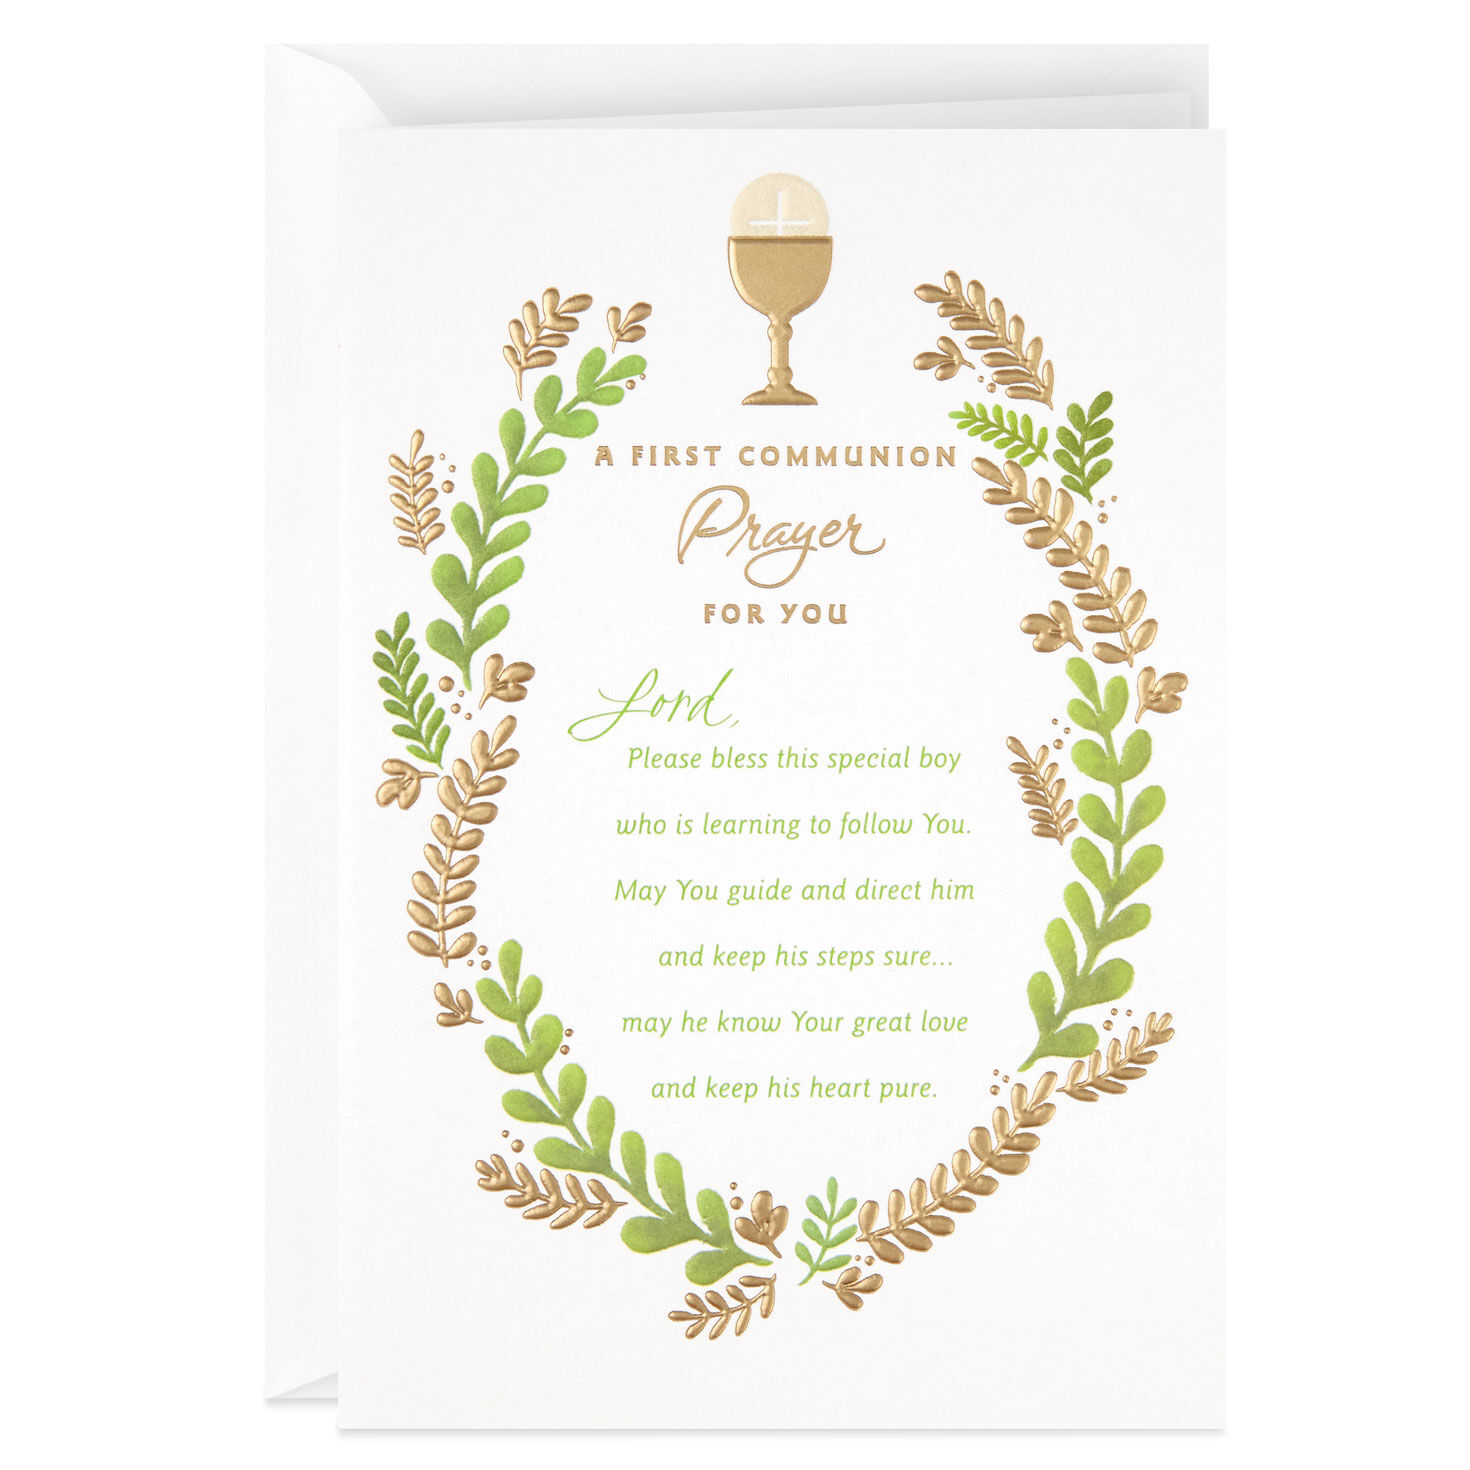 graphic about Printable First Communion Cards called To start with Communion Playing cards Hallmark